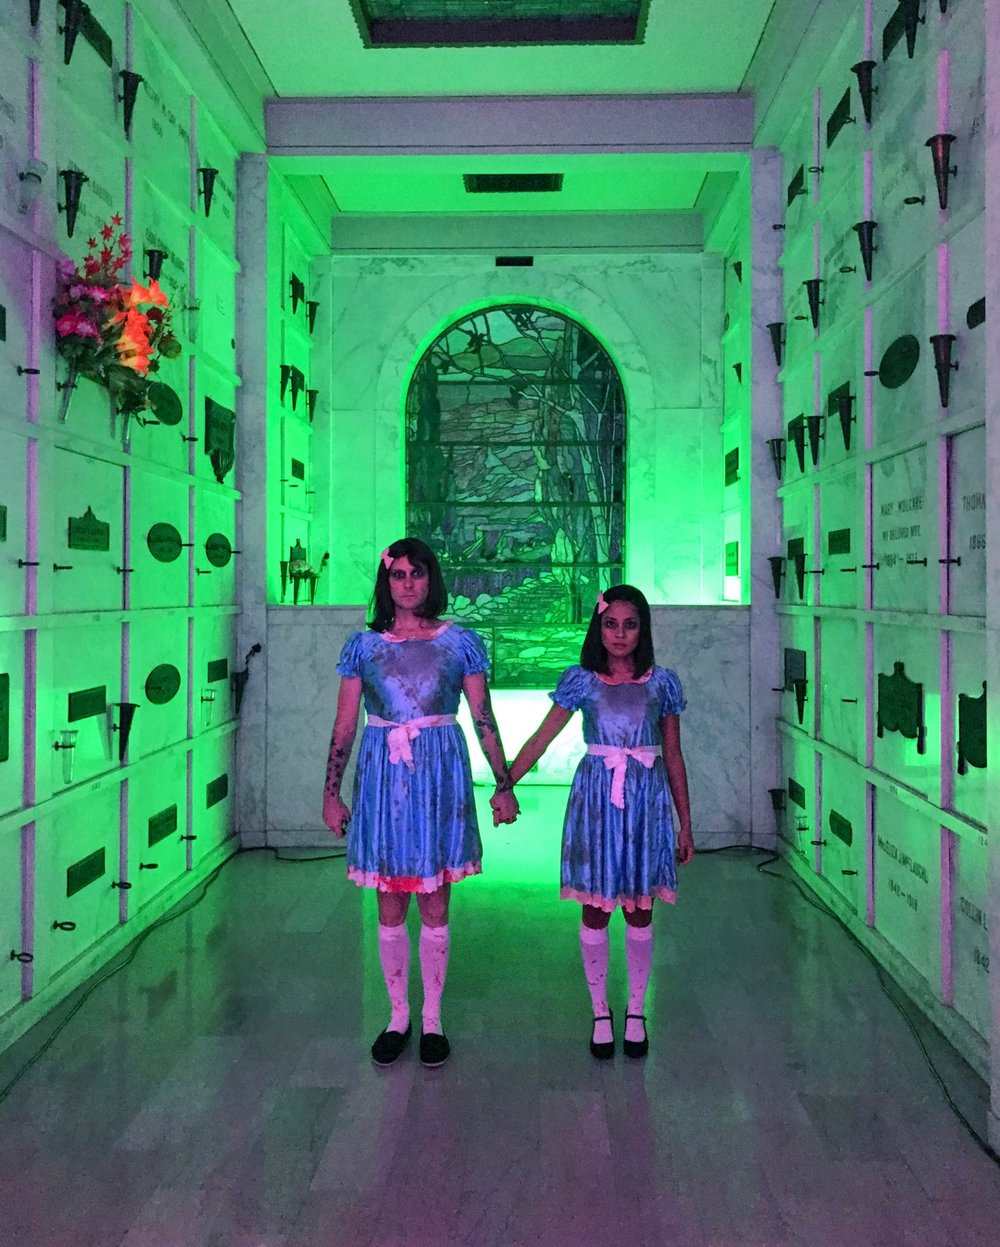 April and I rocking our Grady Twins from The Shining costumes at La Day of the Dead